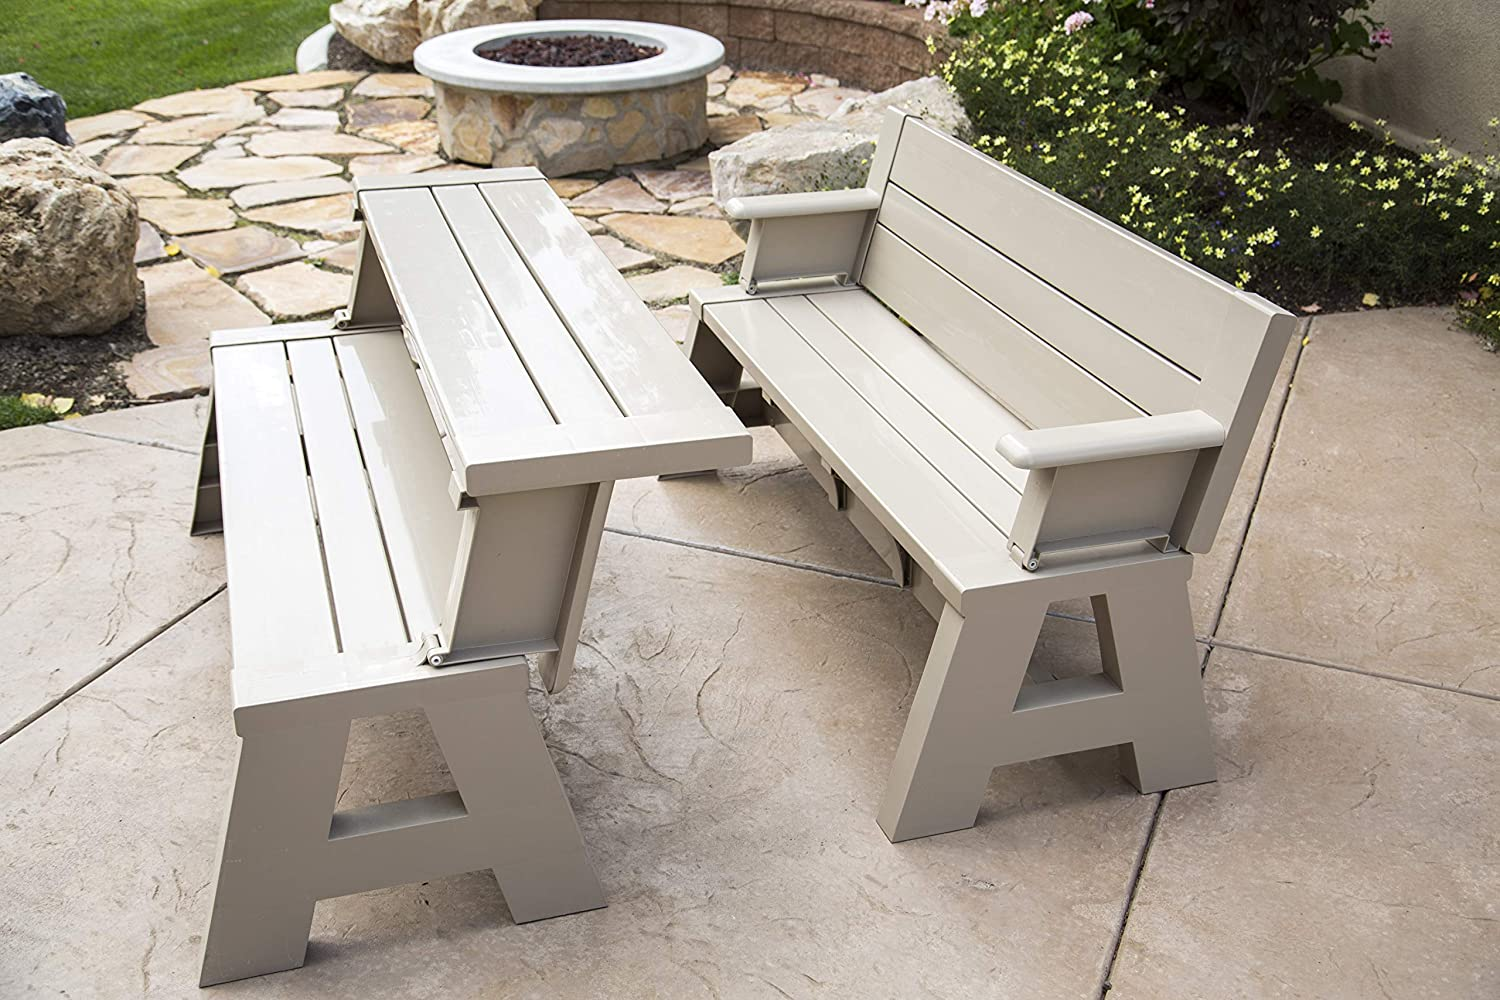 "Premiere Products 5RCATA Tan Convert A Bench, Approximate Size: Table 27"" H x 14"" D 31"" H x 58"" L Seat 17"" H x 14"" D Weighs 38 lbs : Garden & Outdoor"